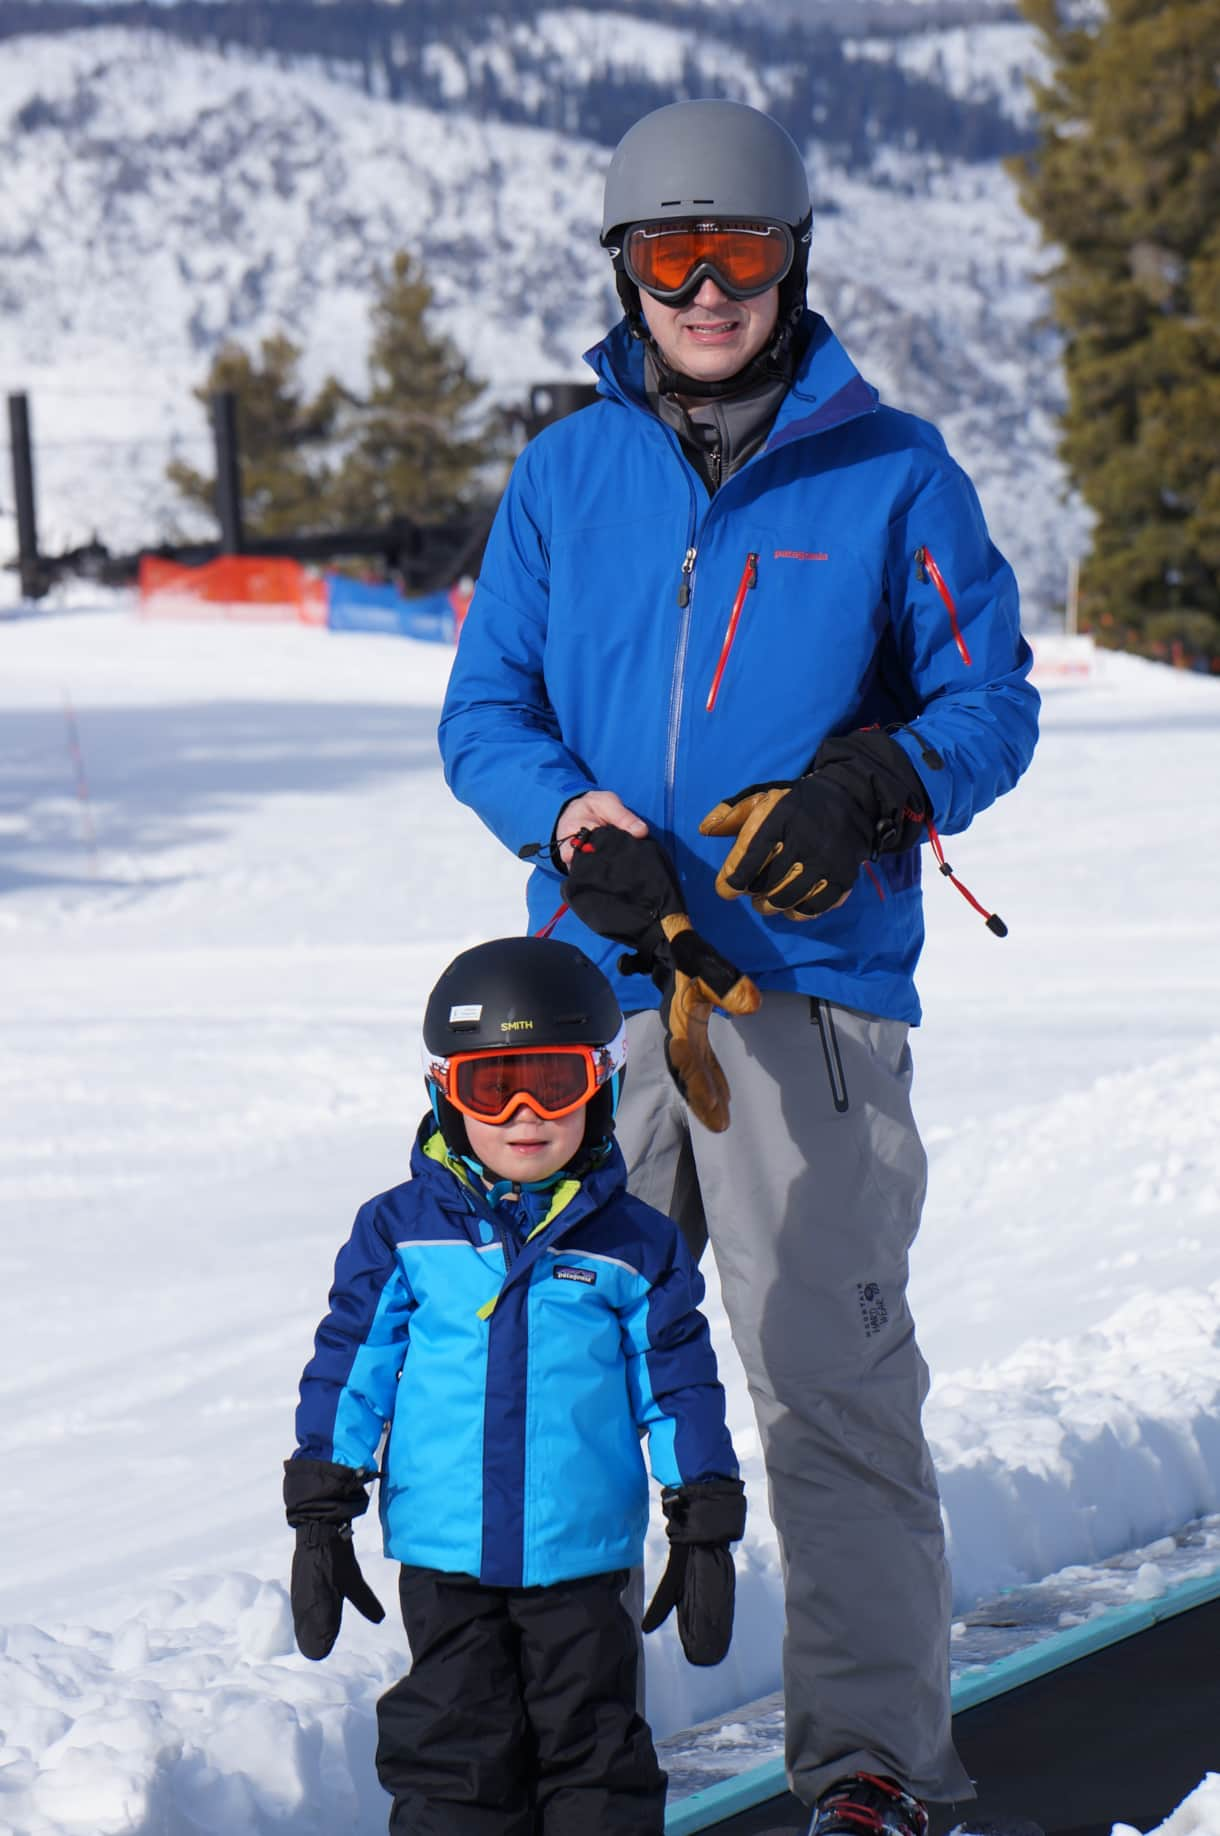 Bear Valley - a great place to learn to ski